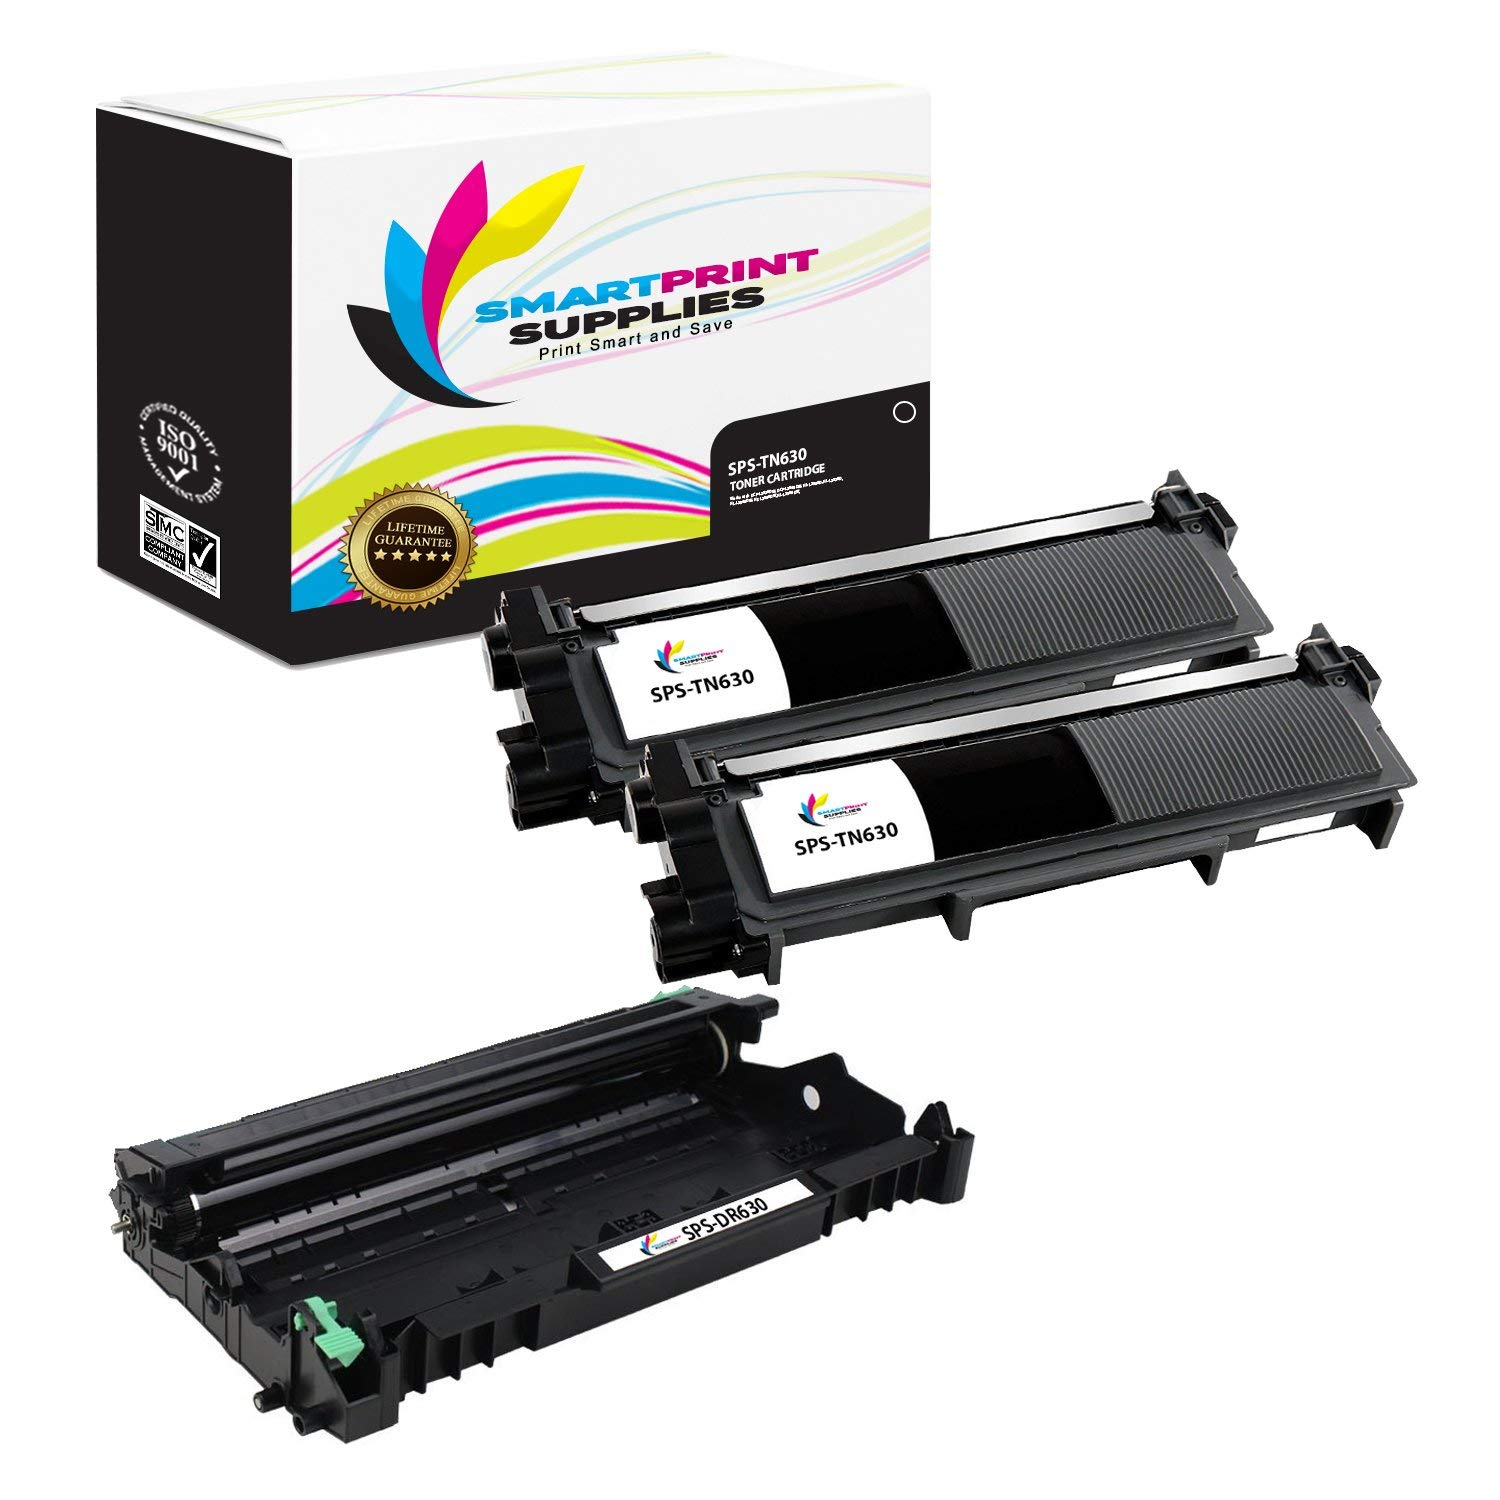 Smart Print Supplies TN630 DR630 High Yield Compatible Toner Cartridge & Drum Unit Replacement for Brother HL-L2300 L2340 L2380, DCP-L2520 L2540, MFC-L2700 L2720 L2740 Printers (2 TN-630,1 DR-630)